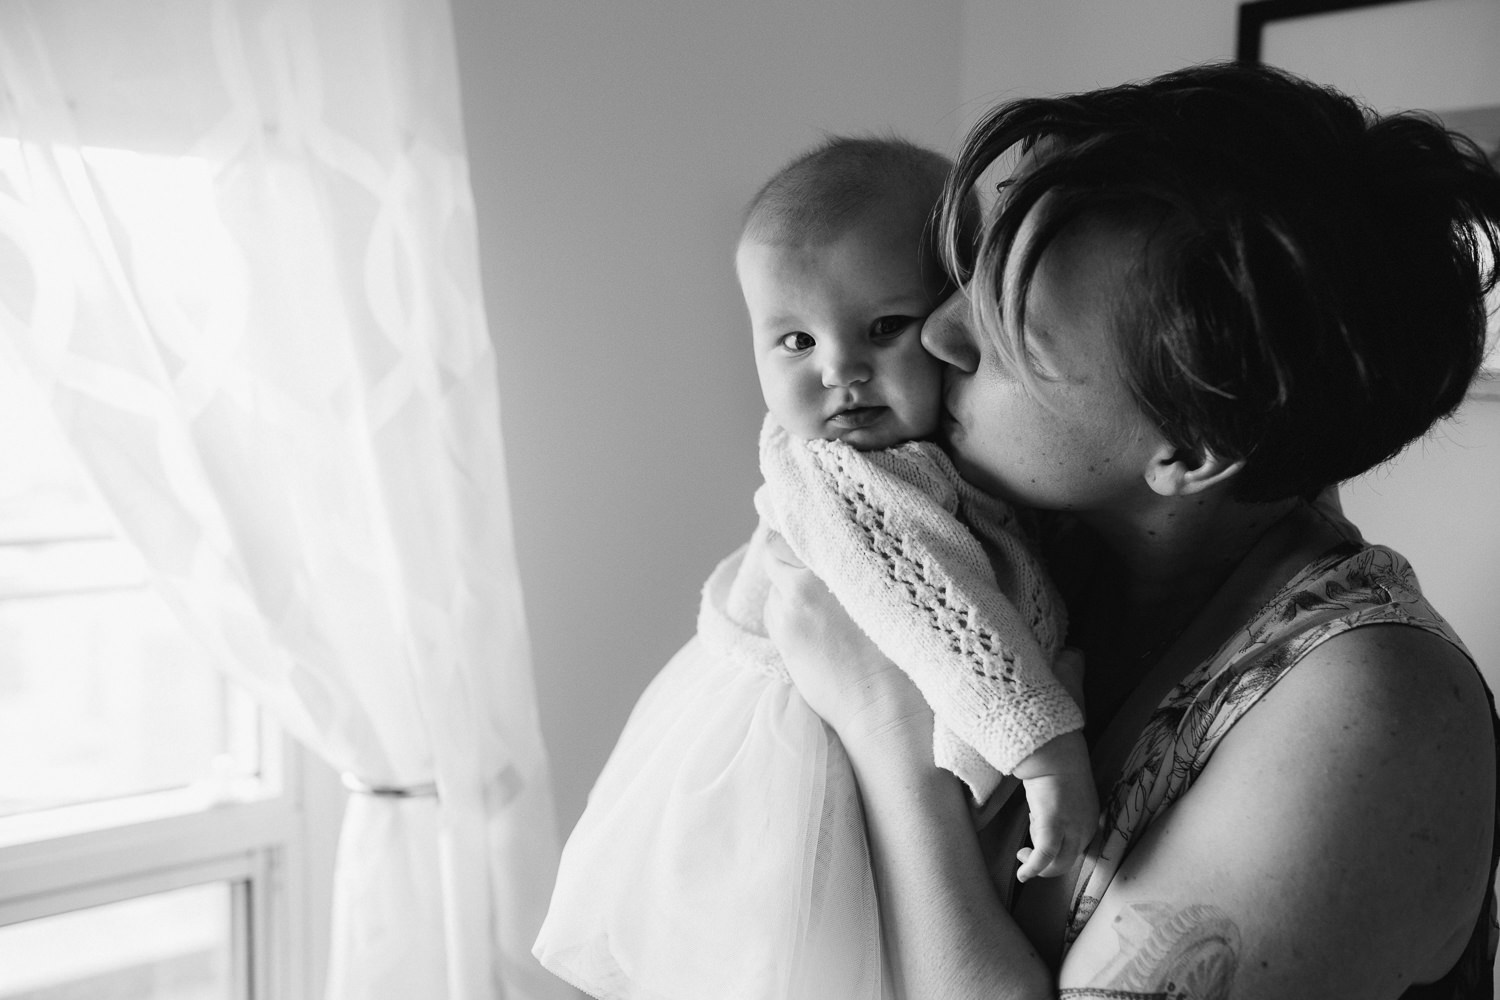 mom kisses 5 month old baby girl on cheek - Markham lifestyle photos